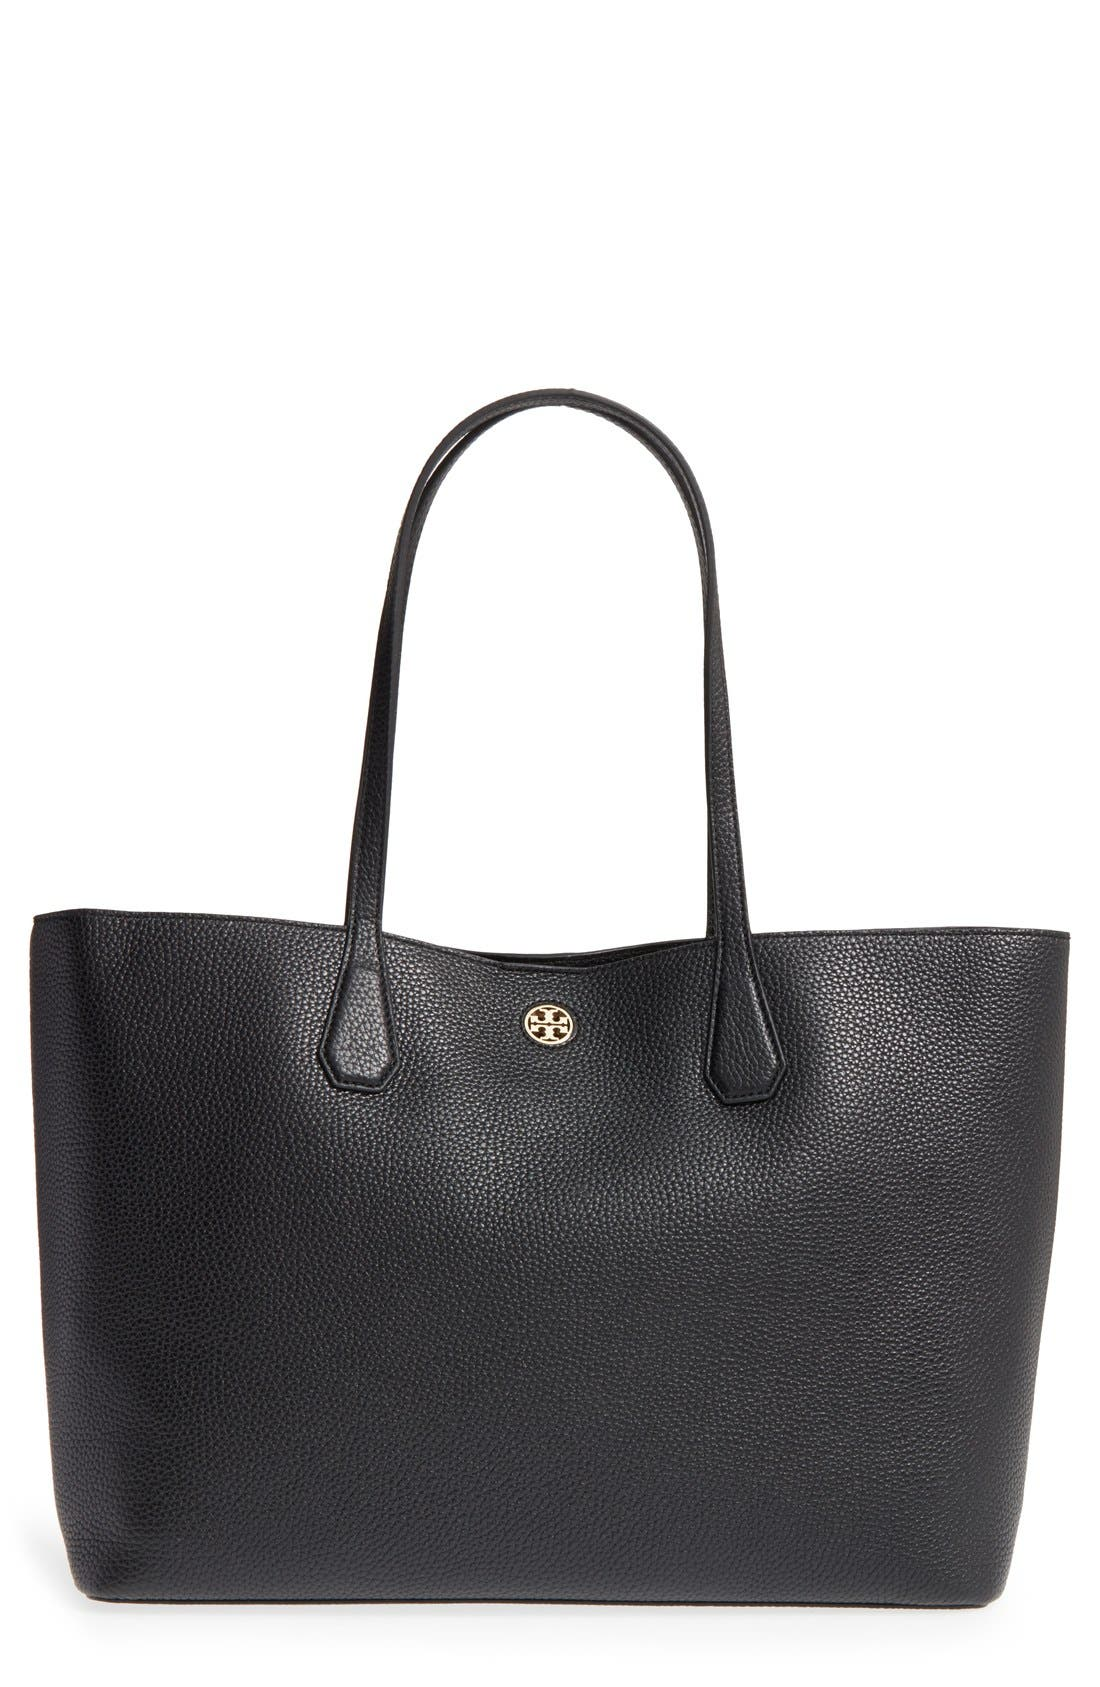 'Perry' Leather Tote,                             Main thumbnail 1, color,                             002